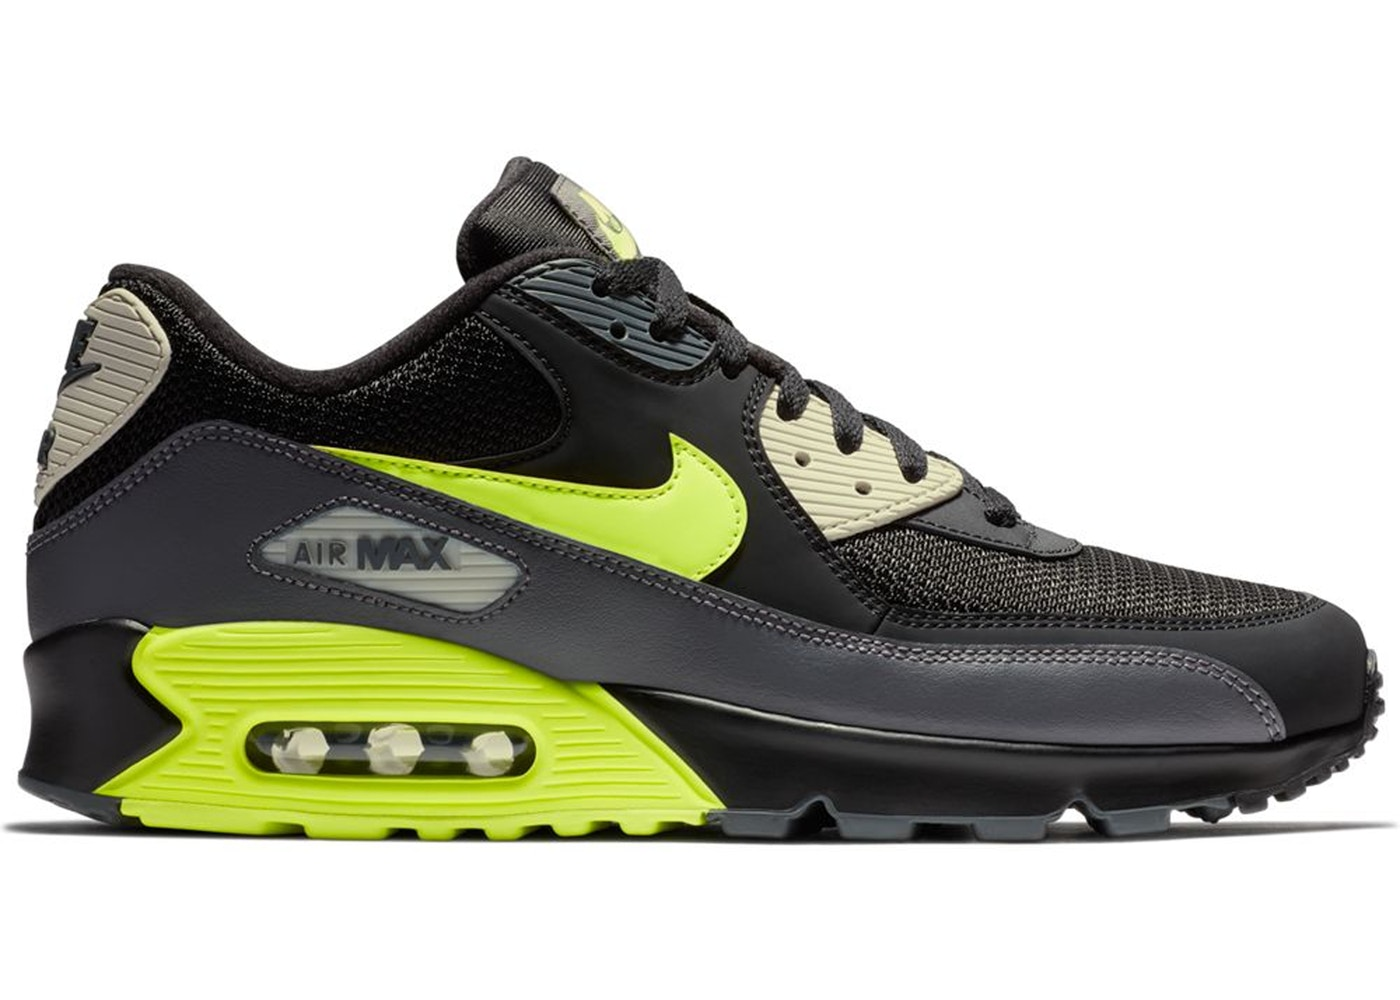 half off 254bf d4dd9 Buy Nike Air Max 90 Shoes   Deadstock Sneakers